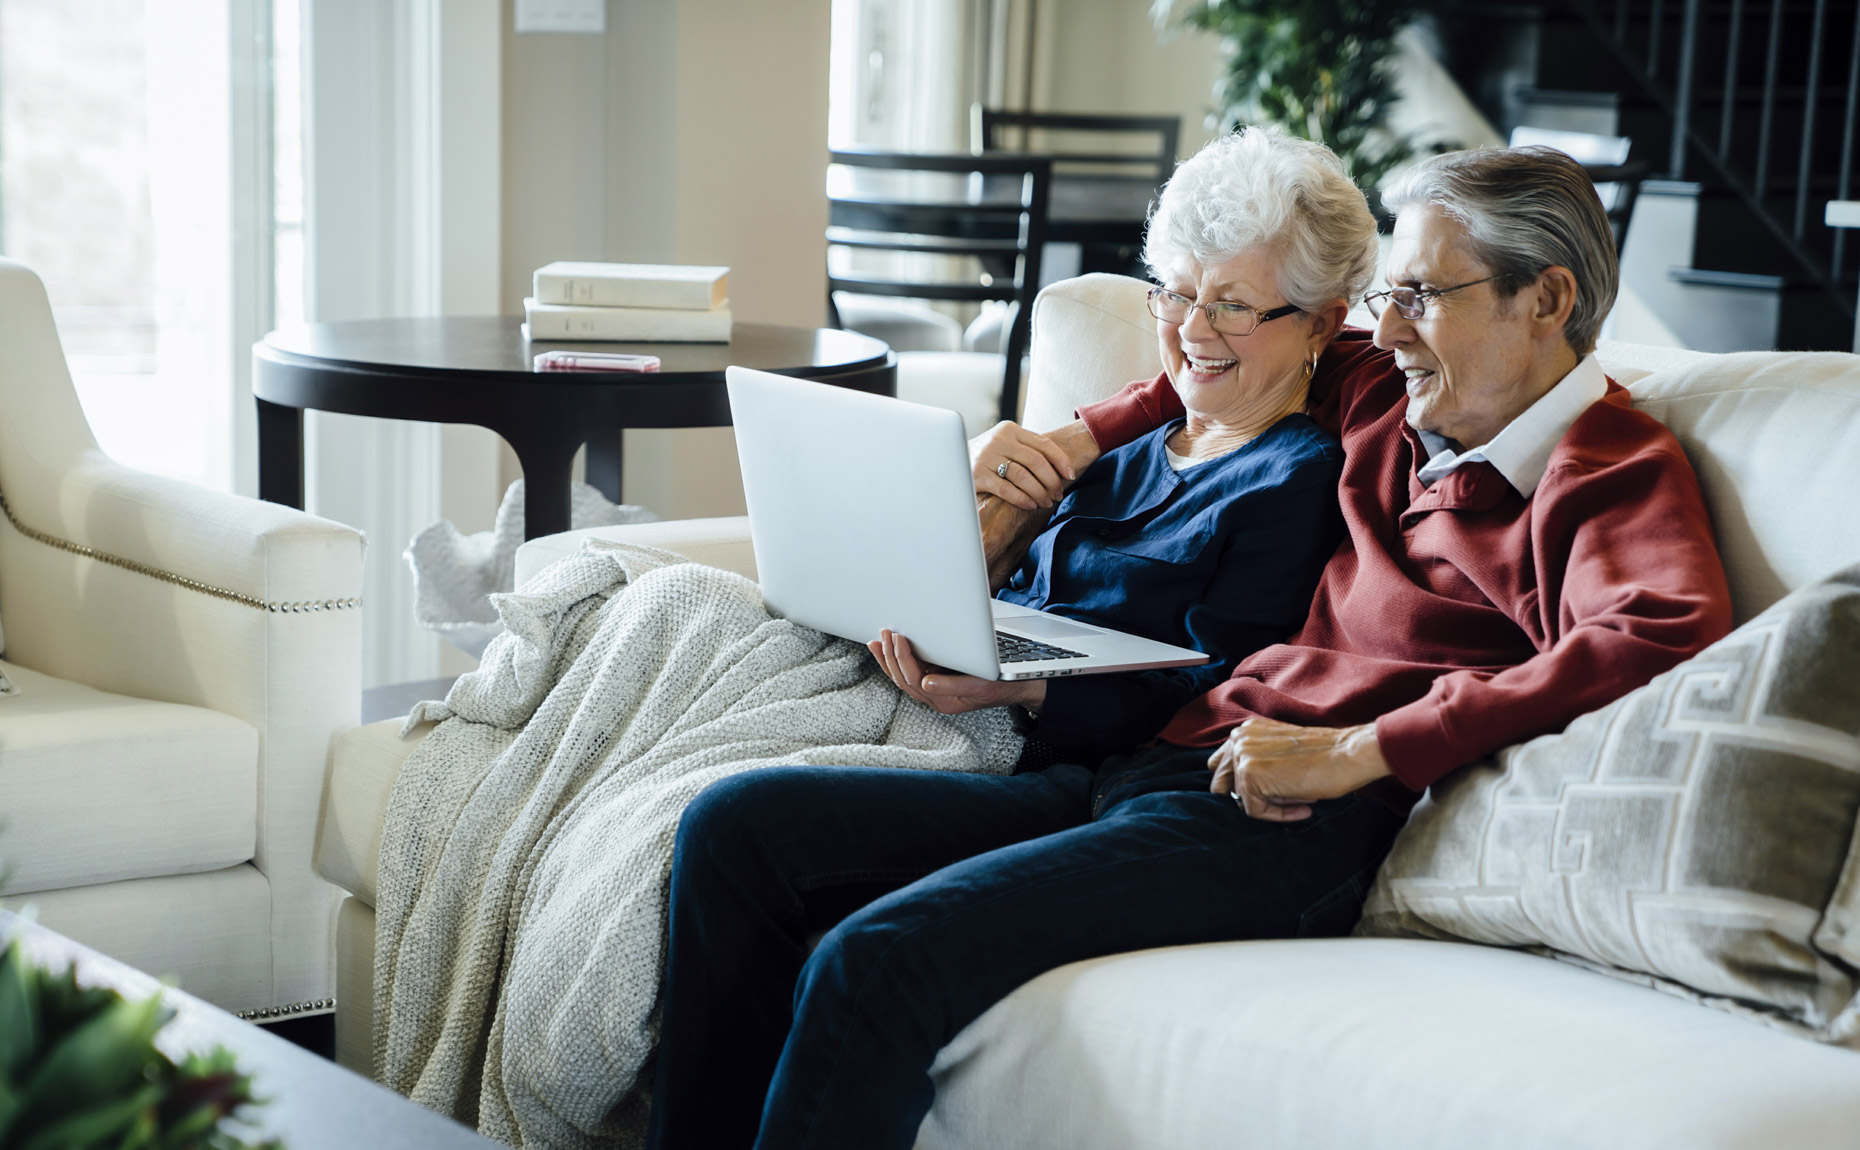 Senior couple snuggling on couch smiling at laptop